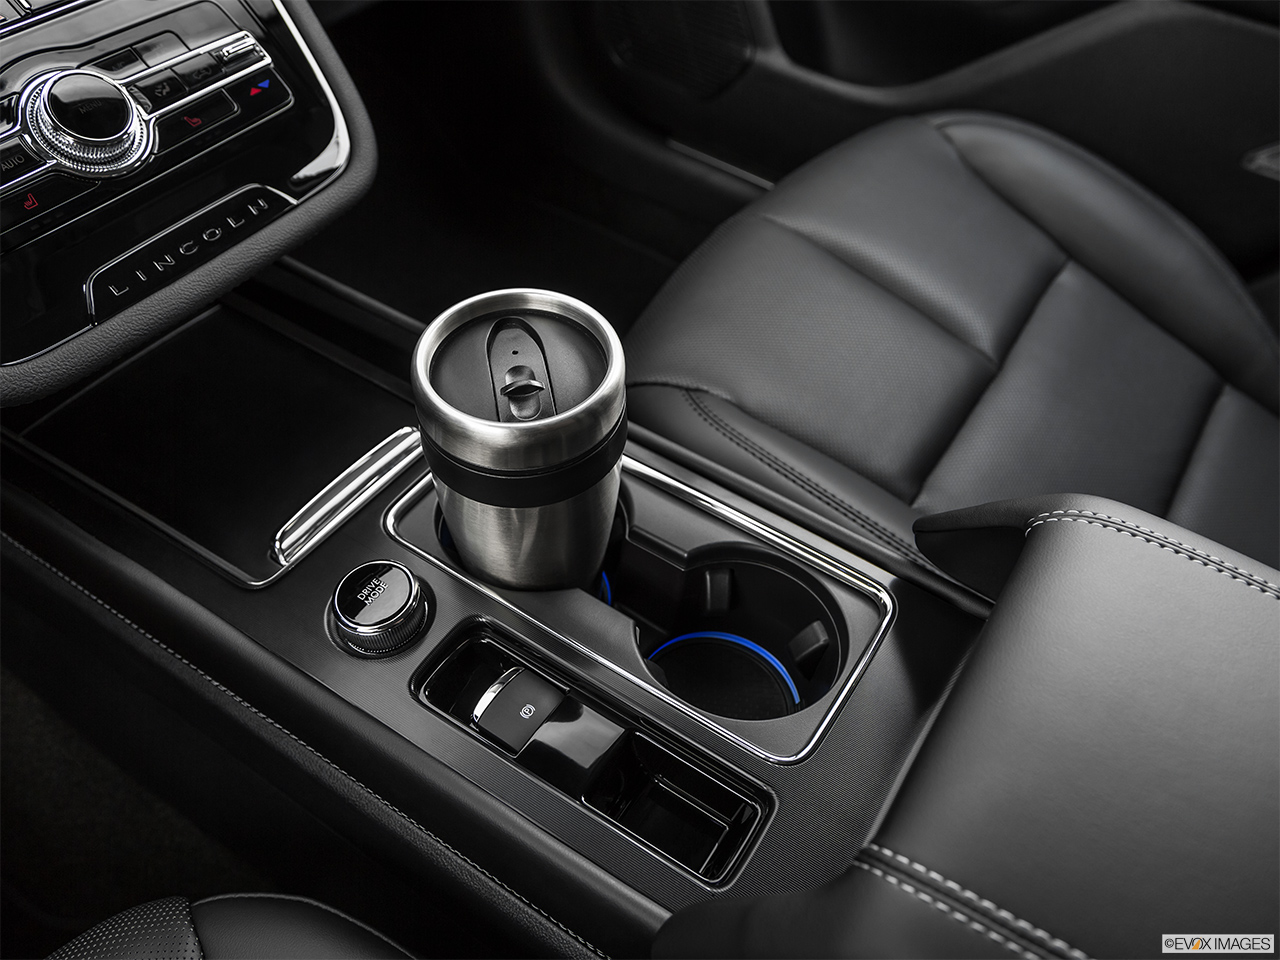 2020 Lincoln Corsair Standard Cup holder prop (primary).